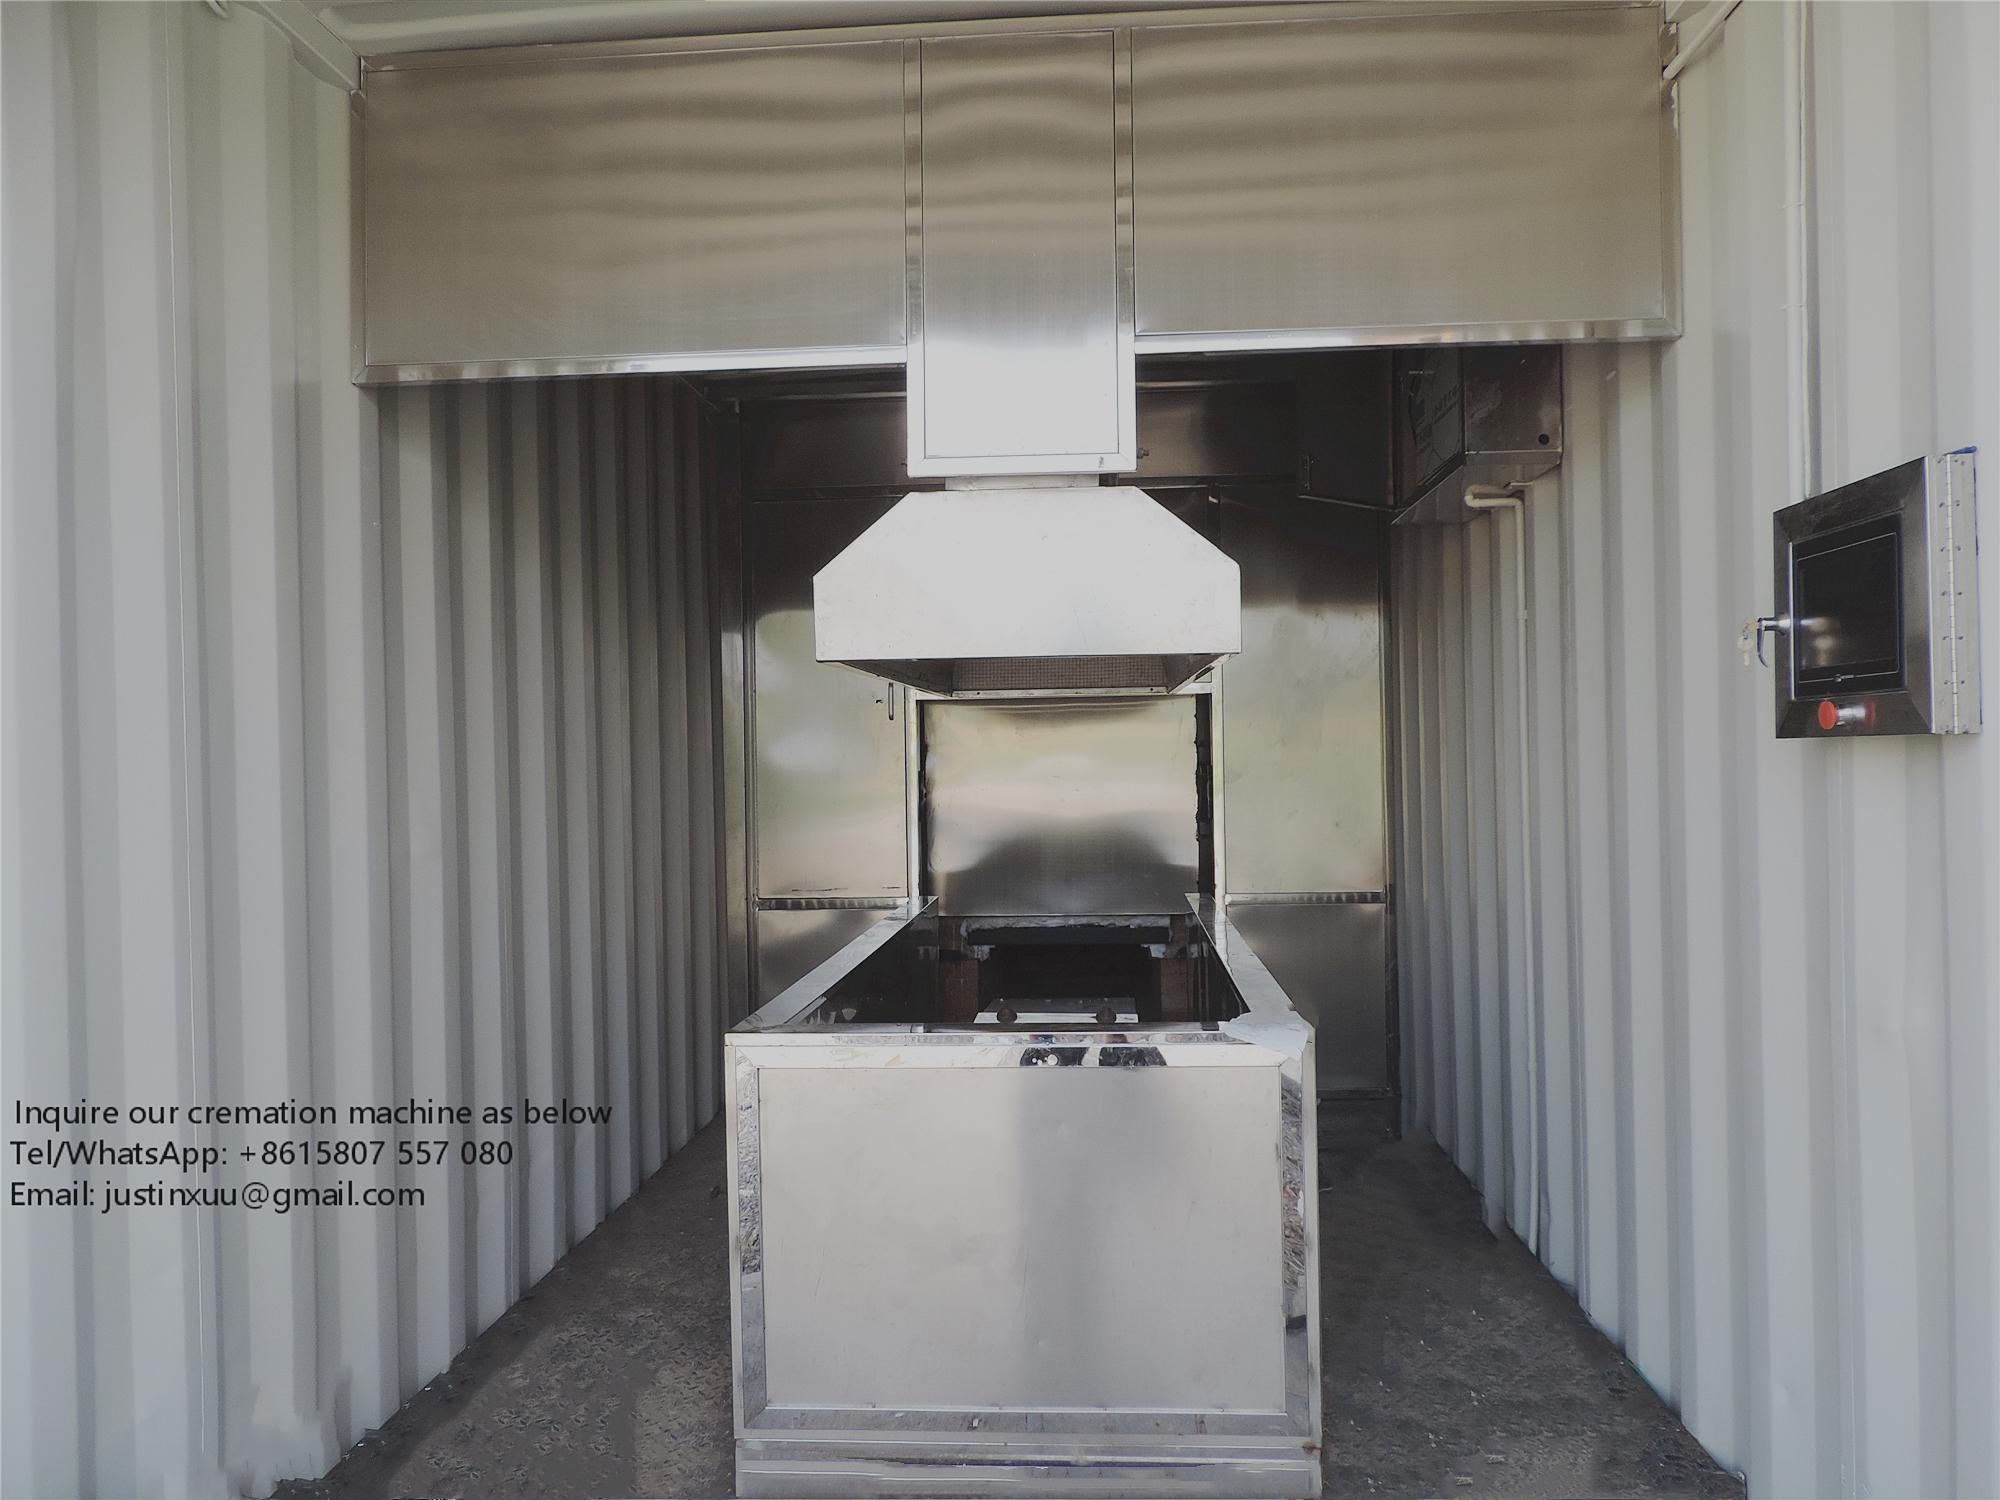 heavy duty durable human cremate machine china designed for Malaysia market 2